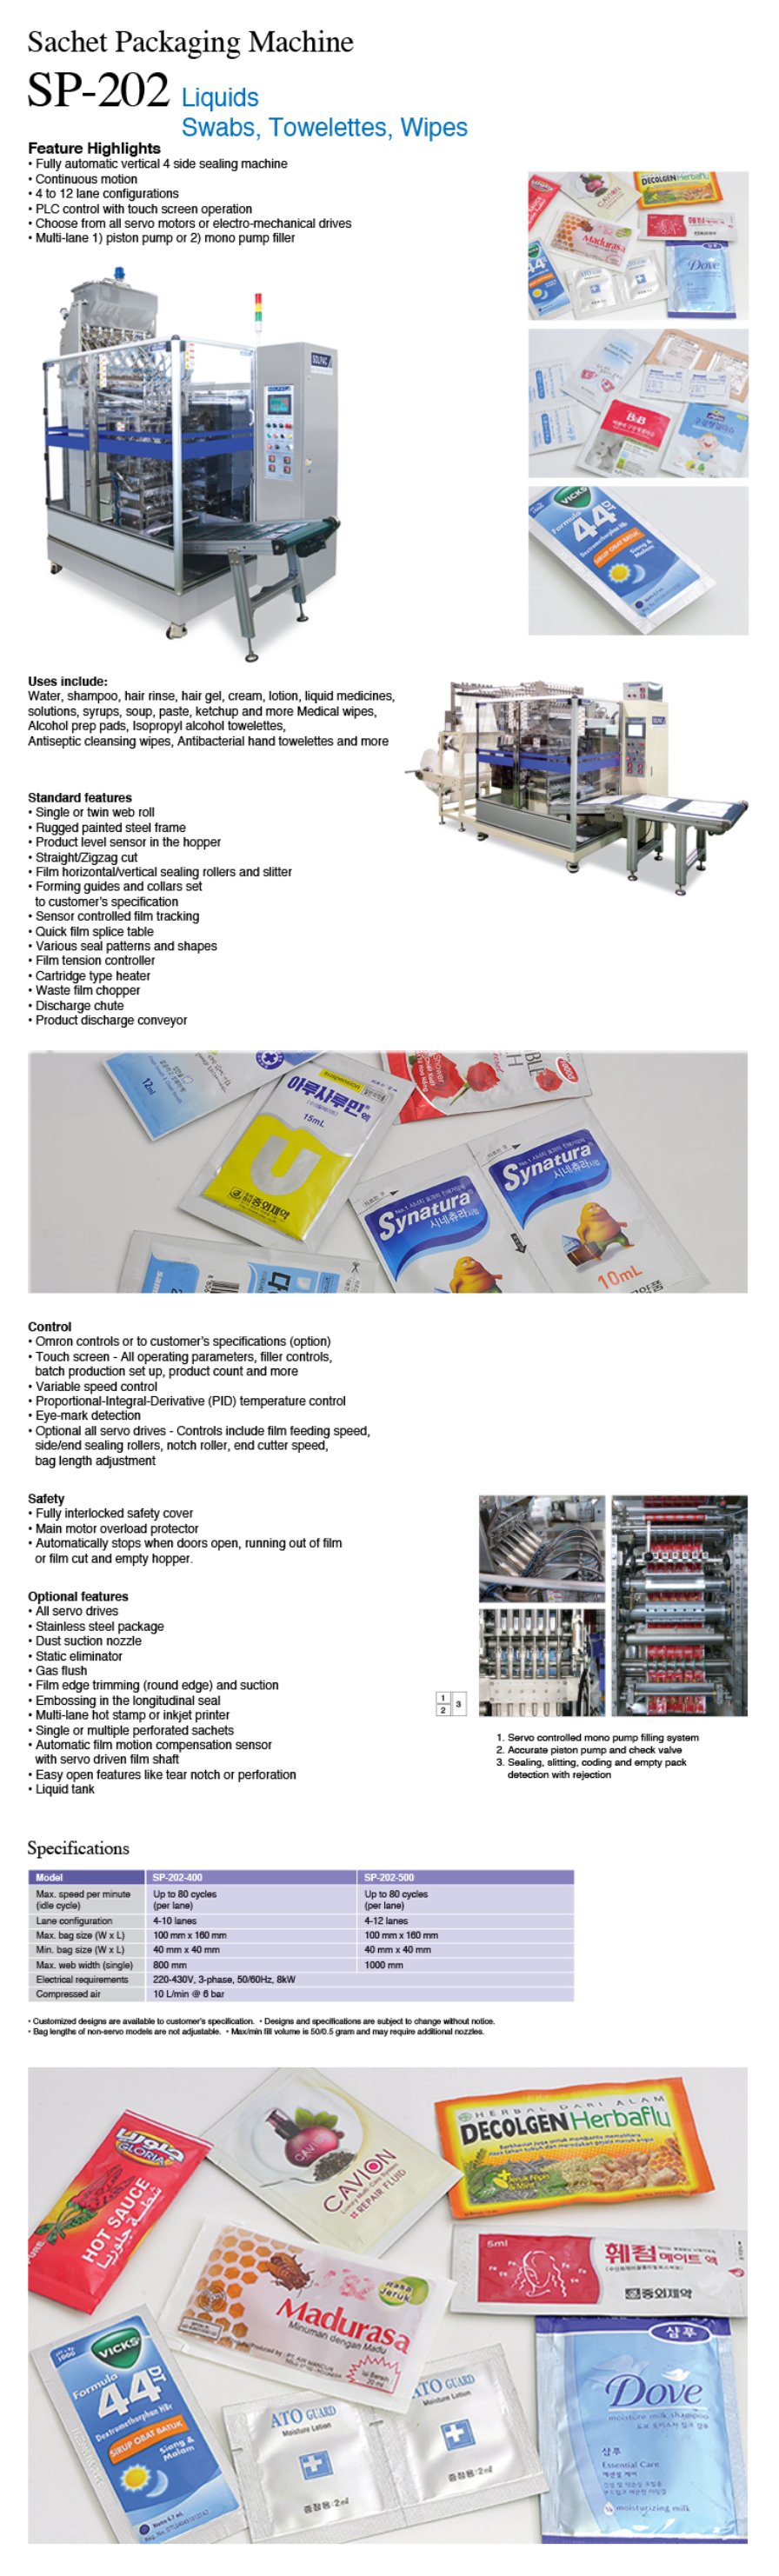 SOLPAC PACKAGING SOLUTION Sachet Packaging Machine (Liquids Swabs, Towelettes, Wipes) SP-202